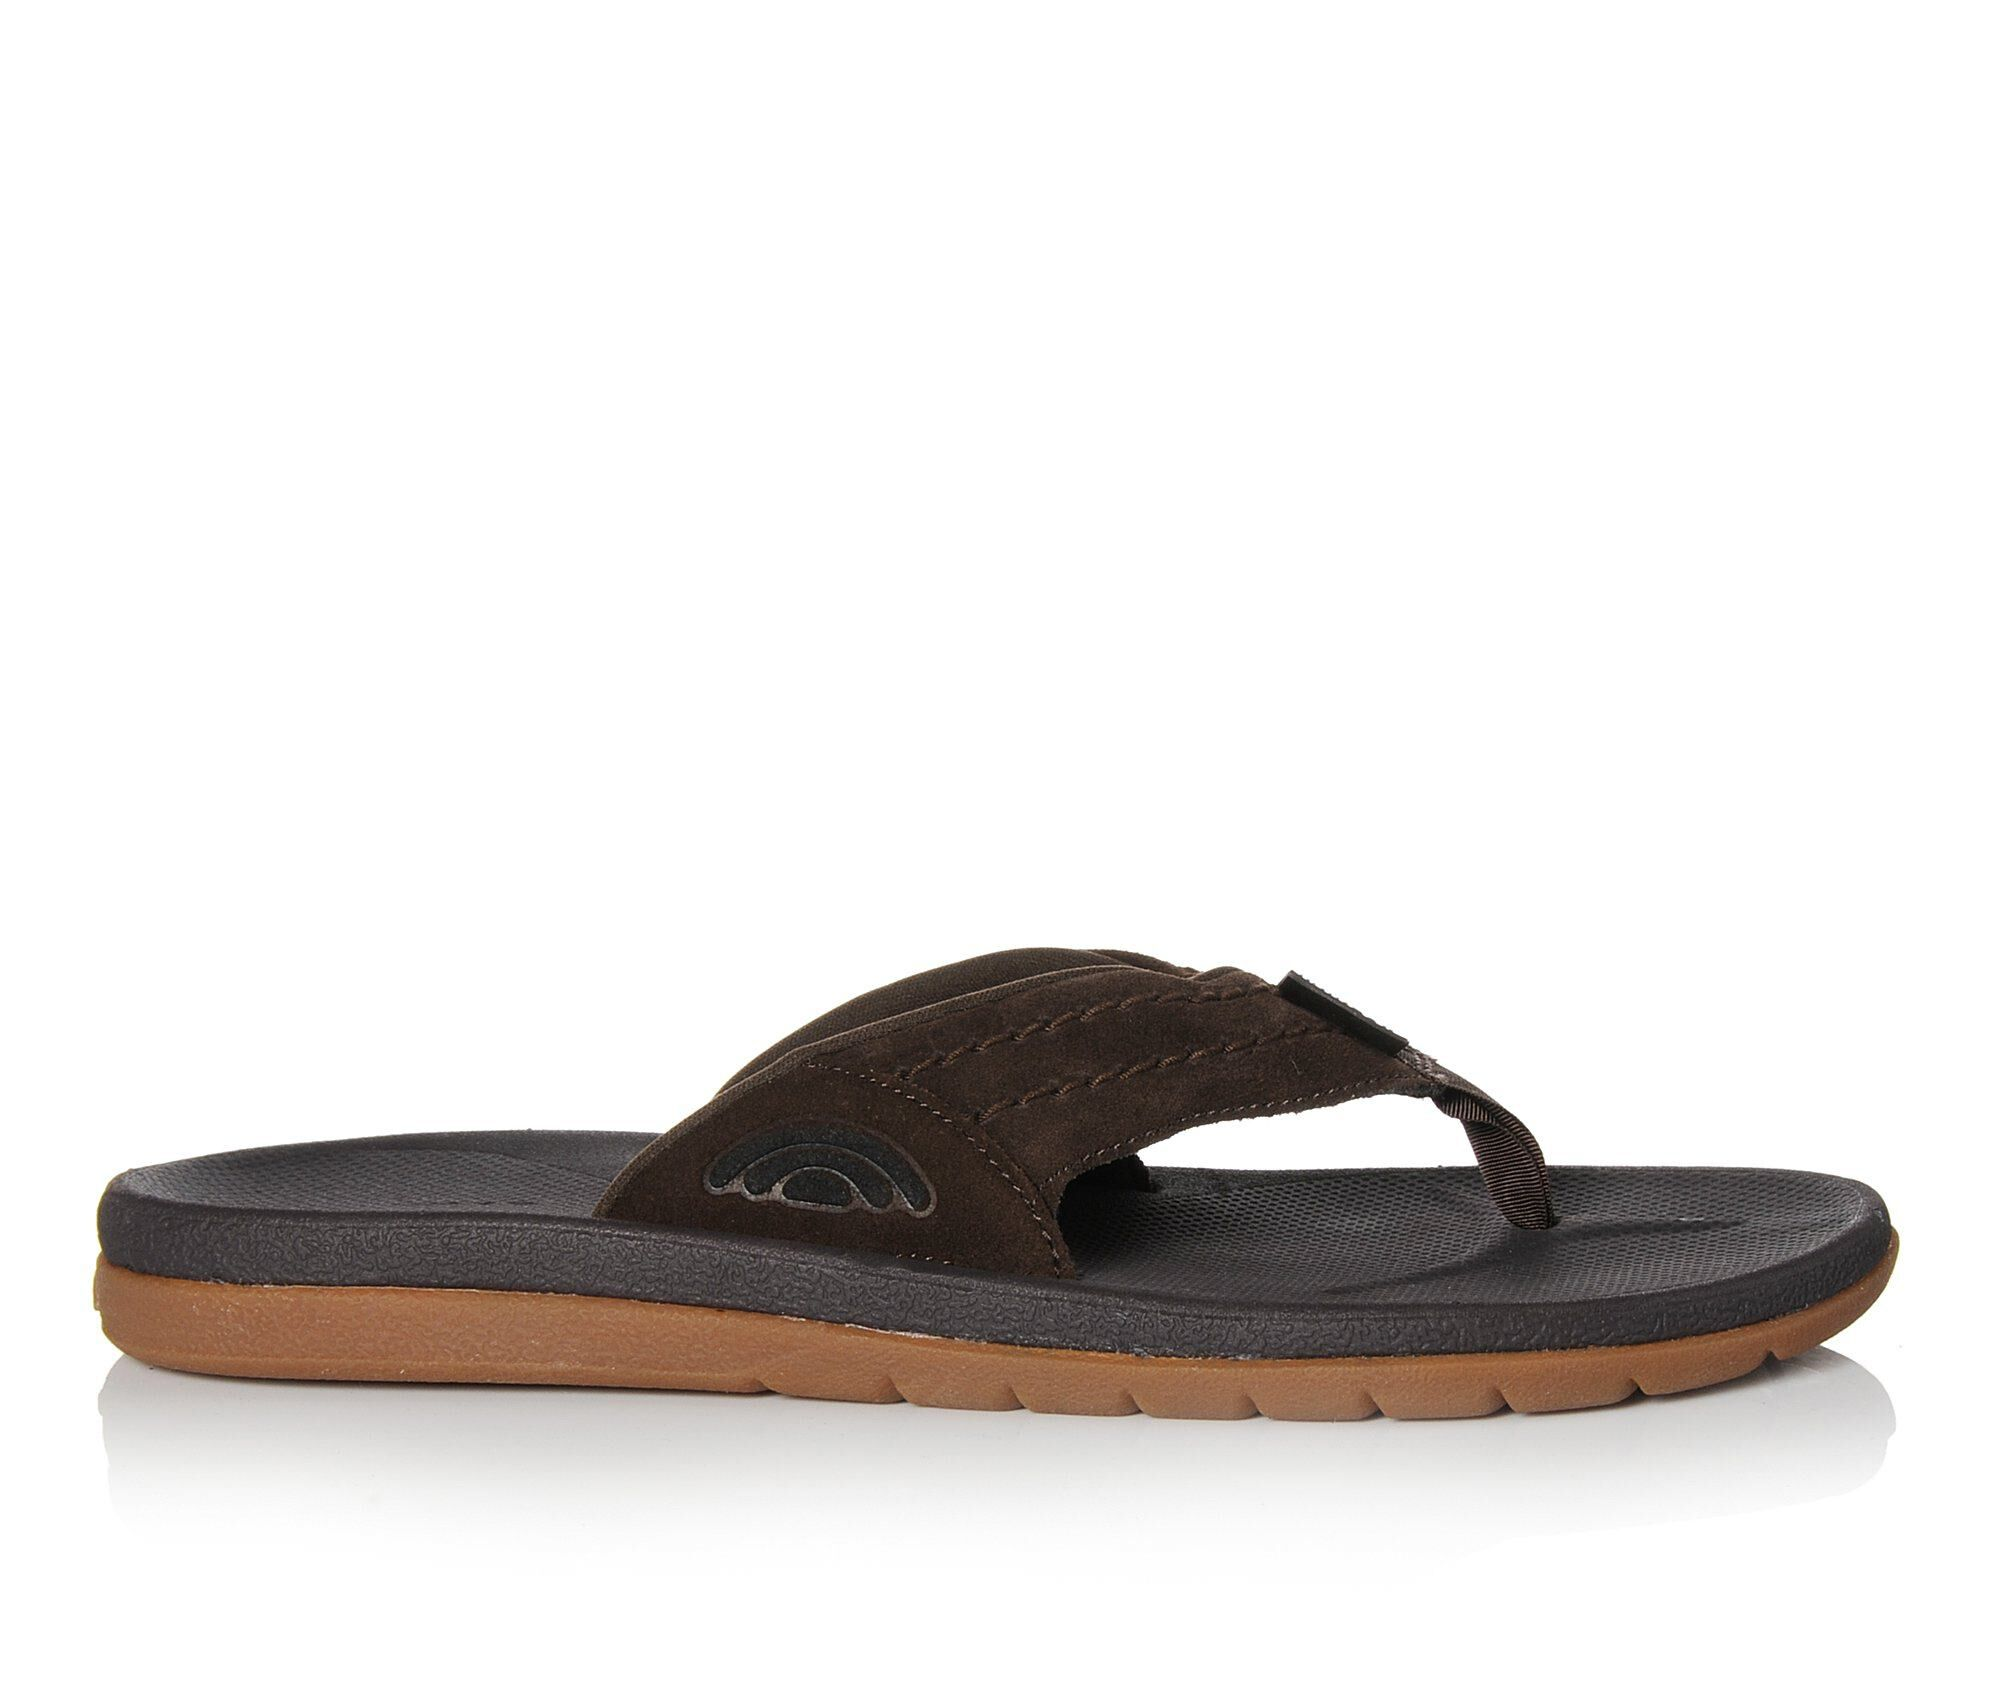 easy returns Men's Rainbow Sandals Eastcape Flip-Flops Dark Brown